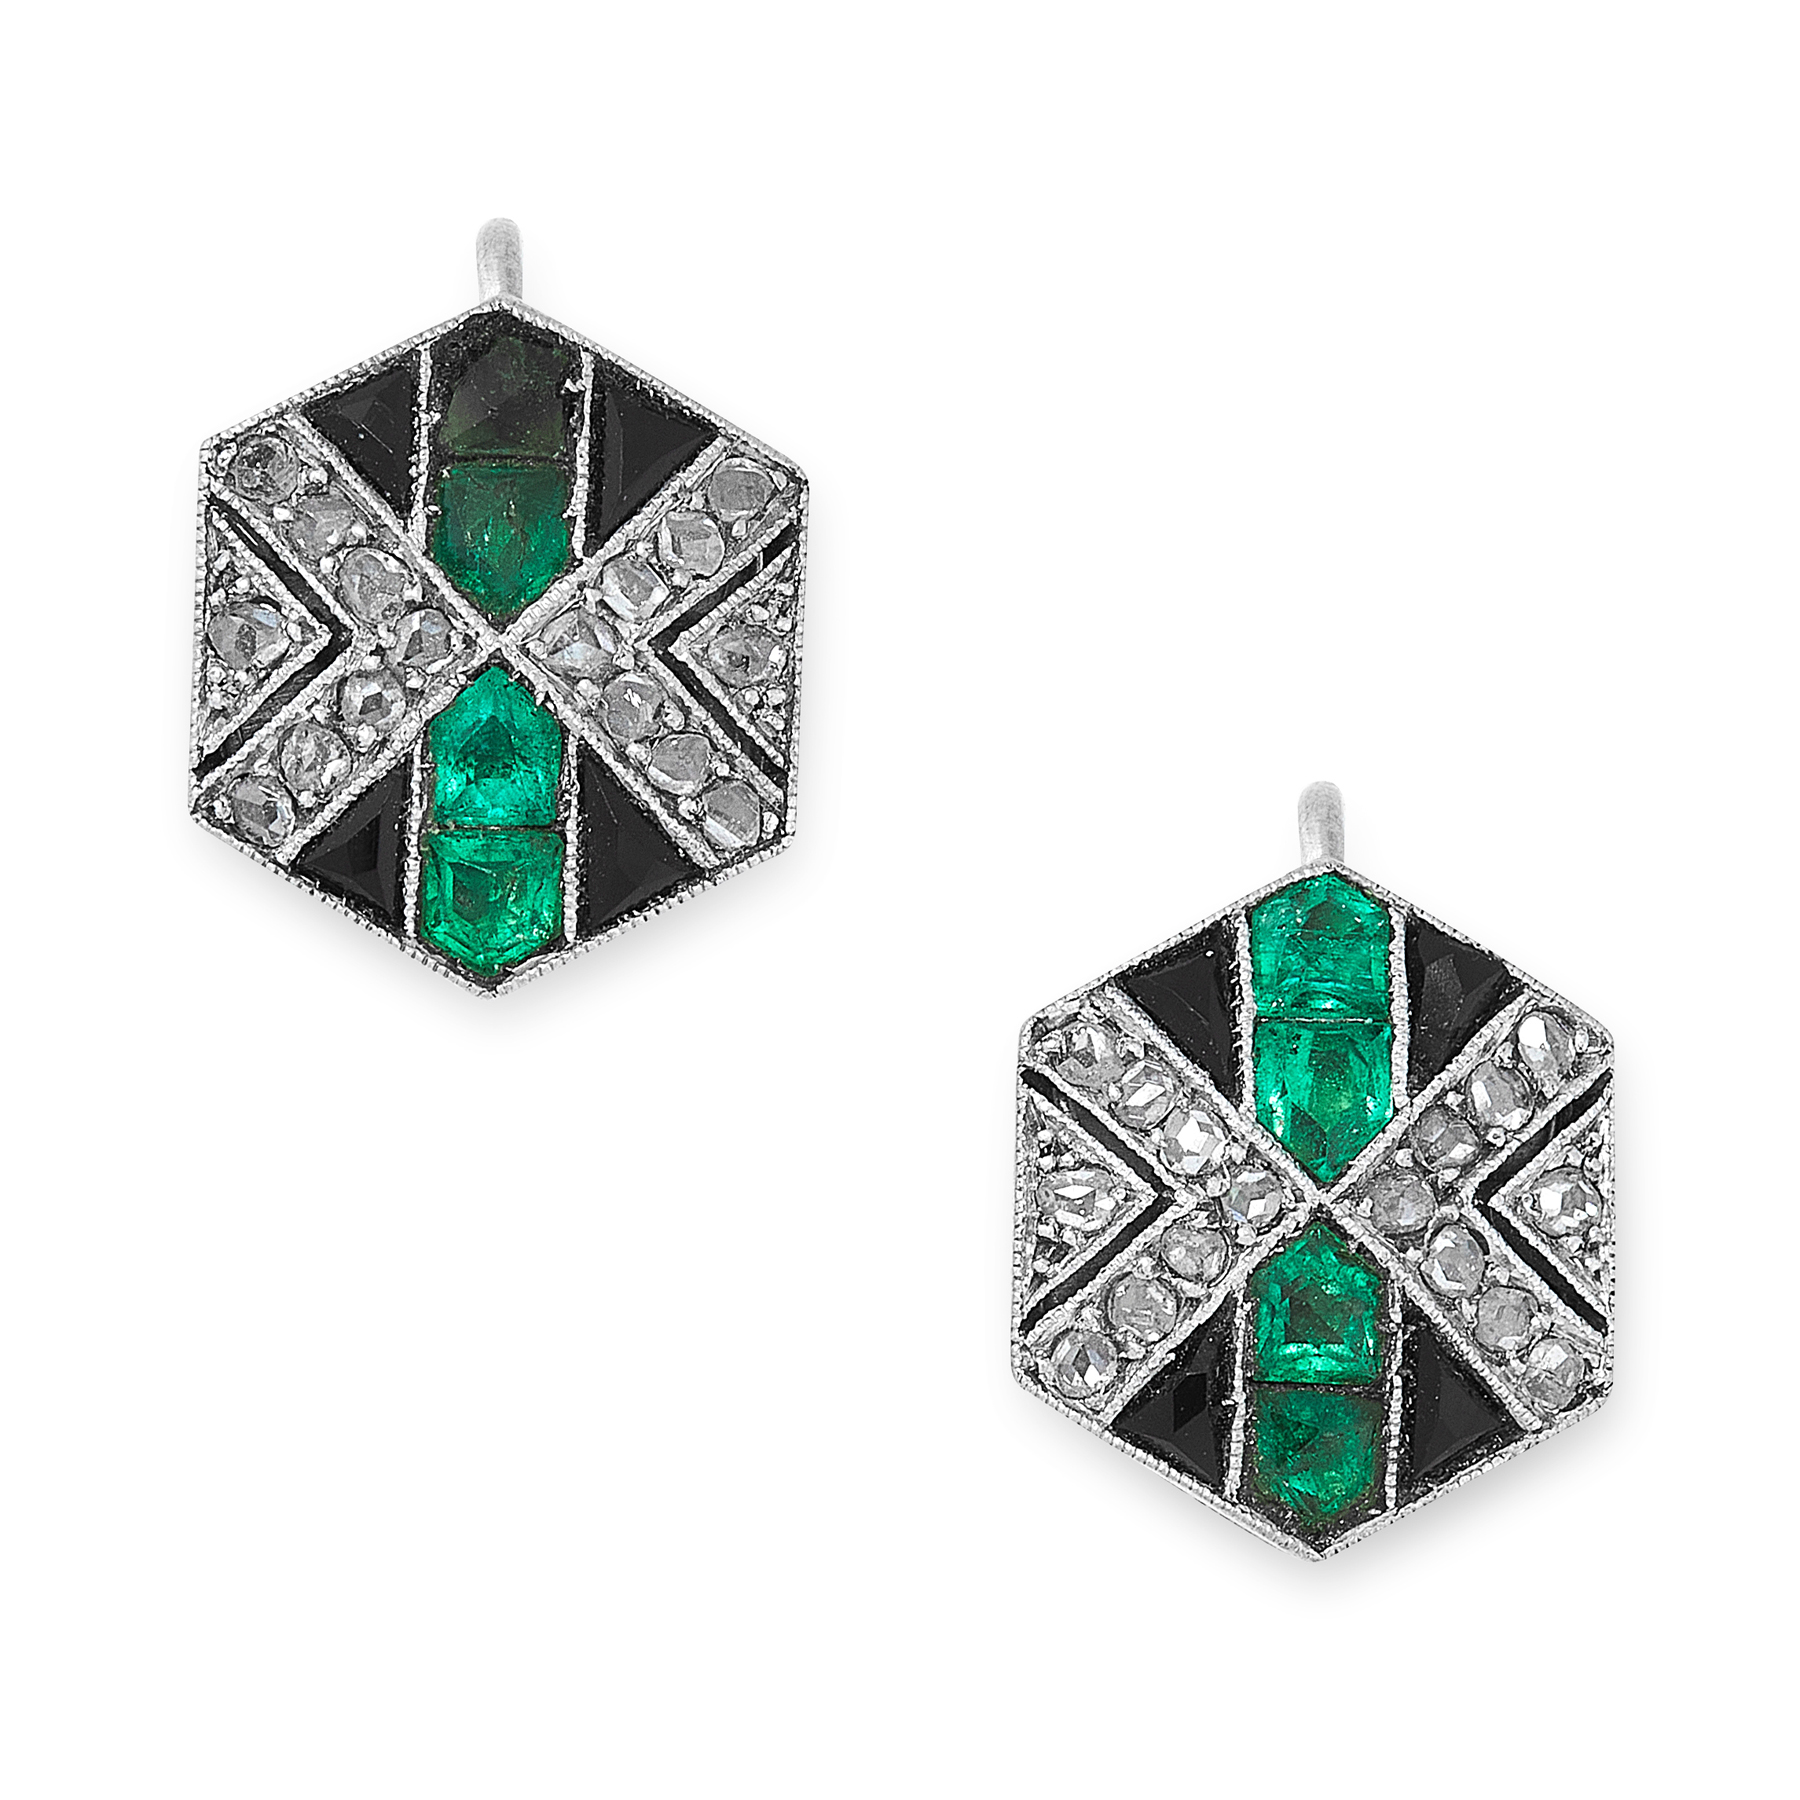 A PAIR OF ART DECO EMERALD, ONYX AND DIAMOND EARRINGS, EARLY 20TH CENTURY each of hexagonal